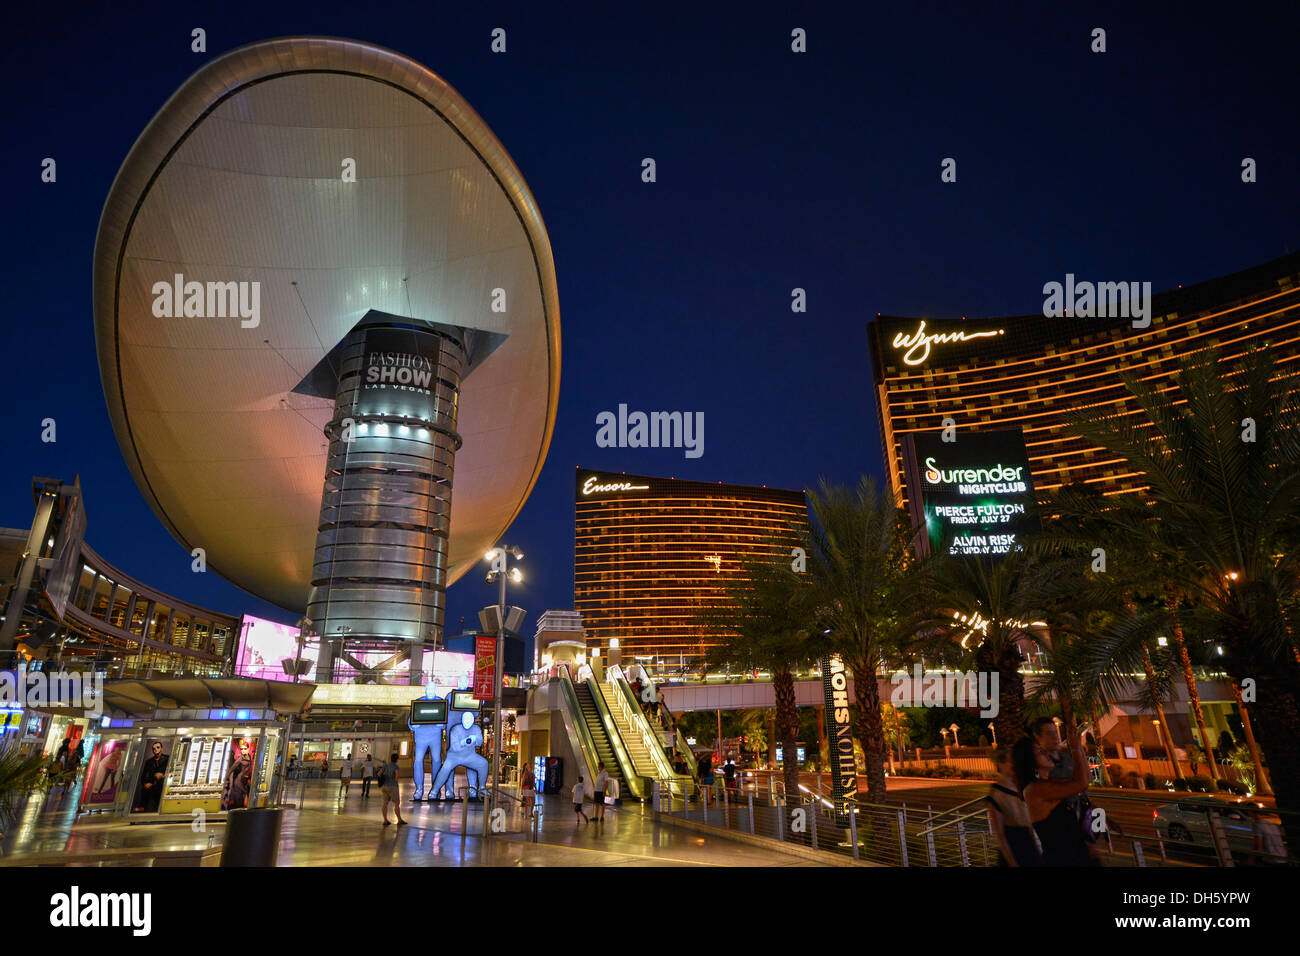 Stock photo ufo look at the fashion show shopping mall at night luxury hotel wynn casino encore paradise las vegas nevada